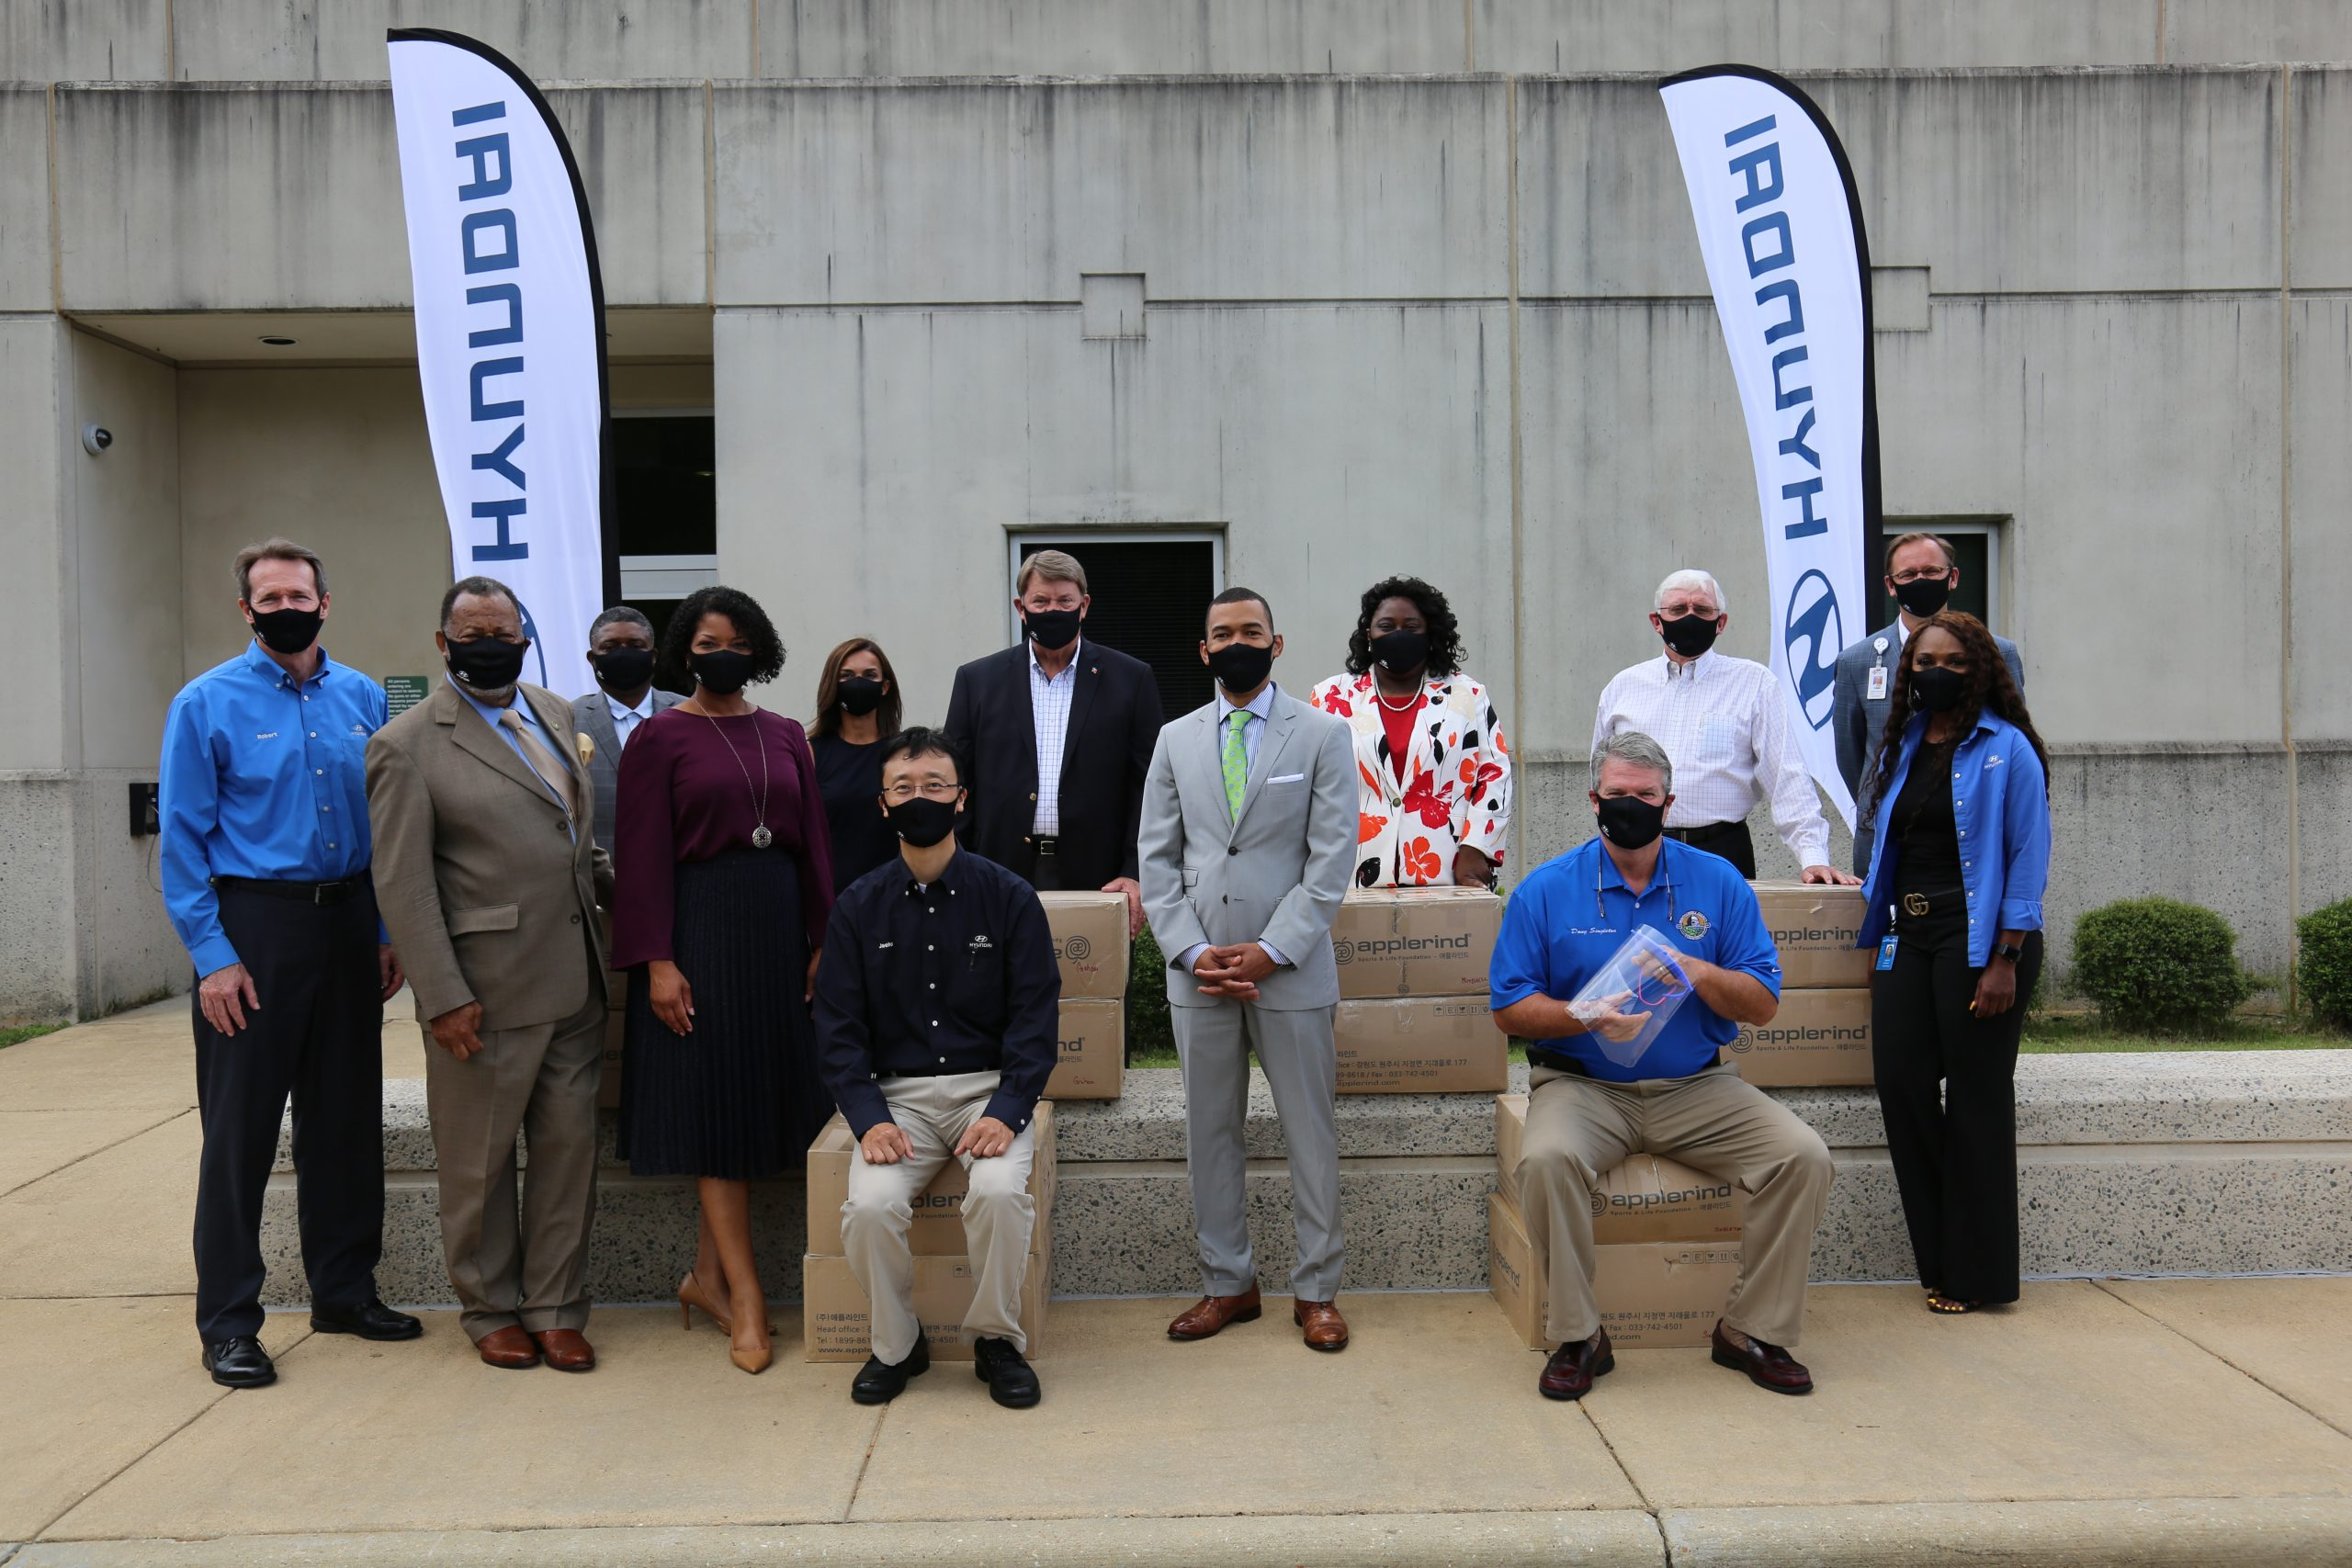 HMMA DONATES MASKS AND FACE SHIELDS TO MONTGOMERY AREA HEALTH CARE PROVIDERS AND COMMUNITY